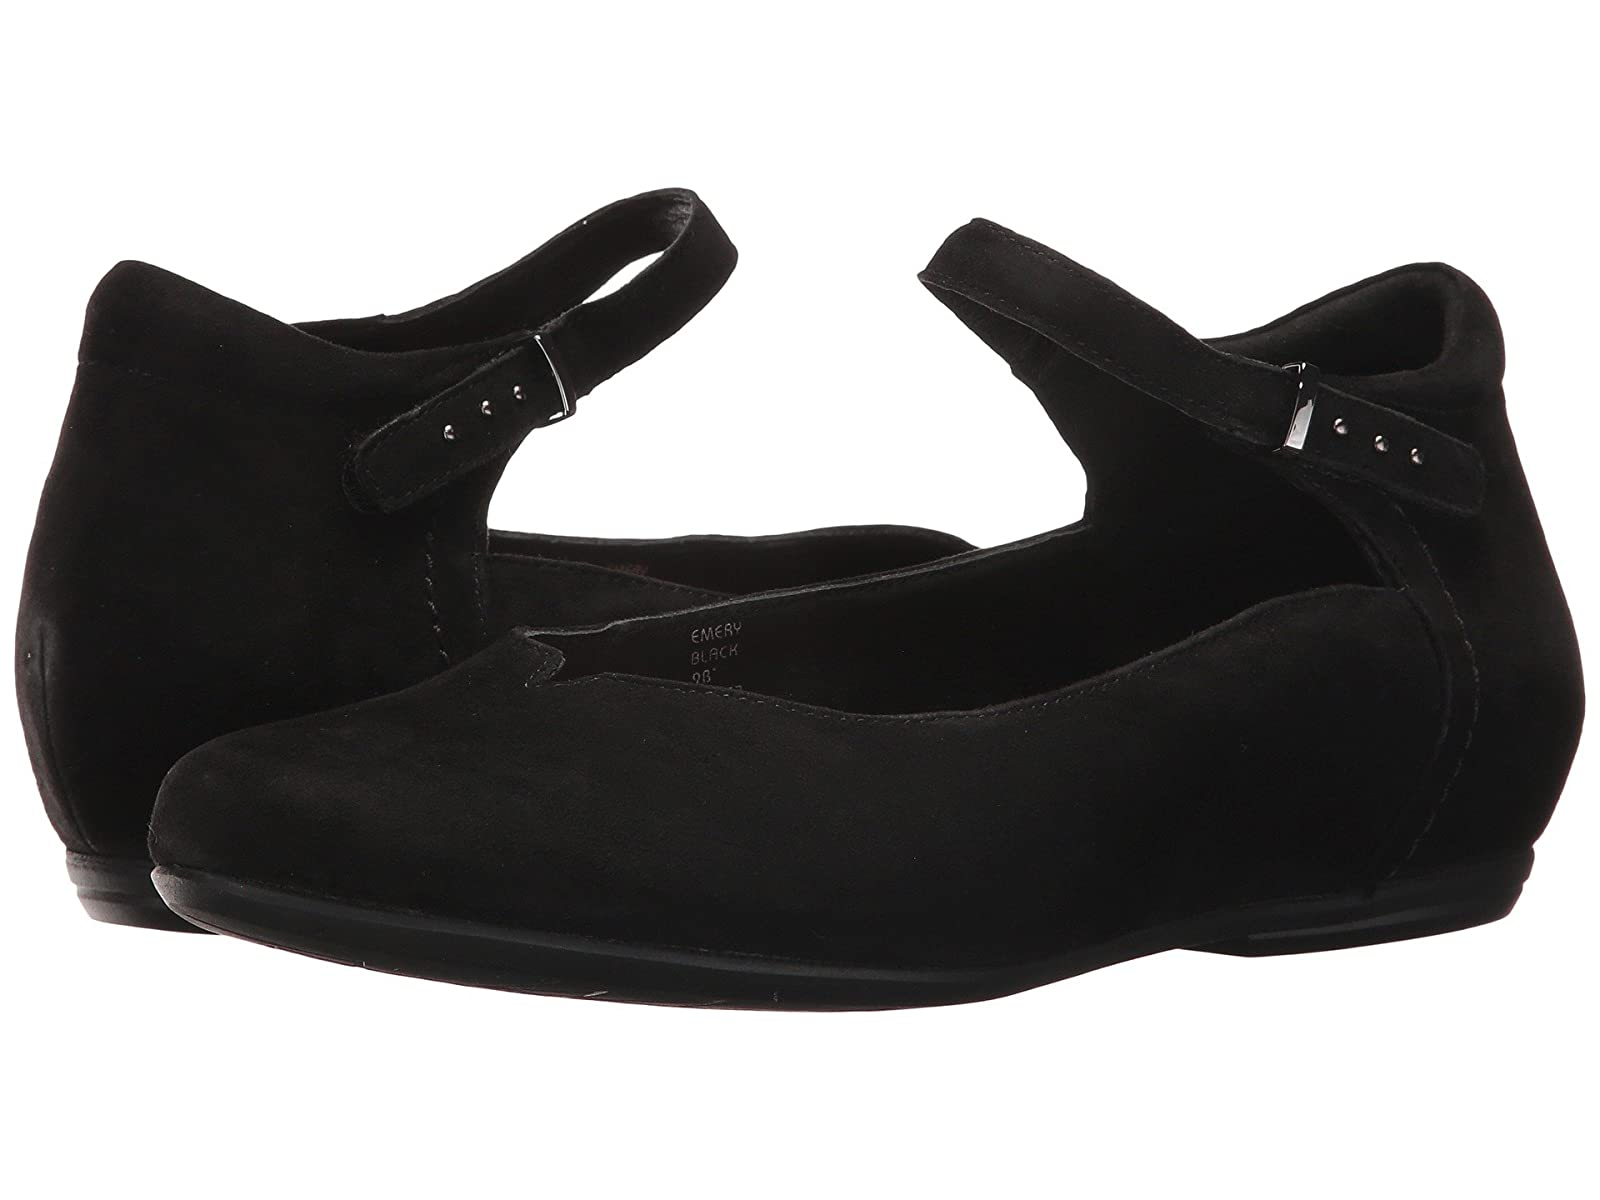 Earth Emery EarthiesCheap and distinctive eye-catching shoes